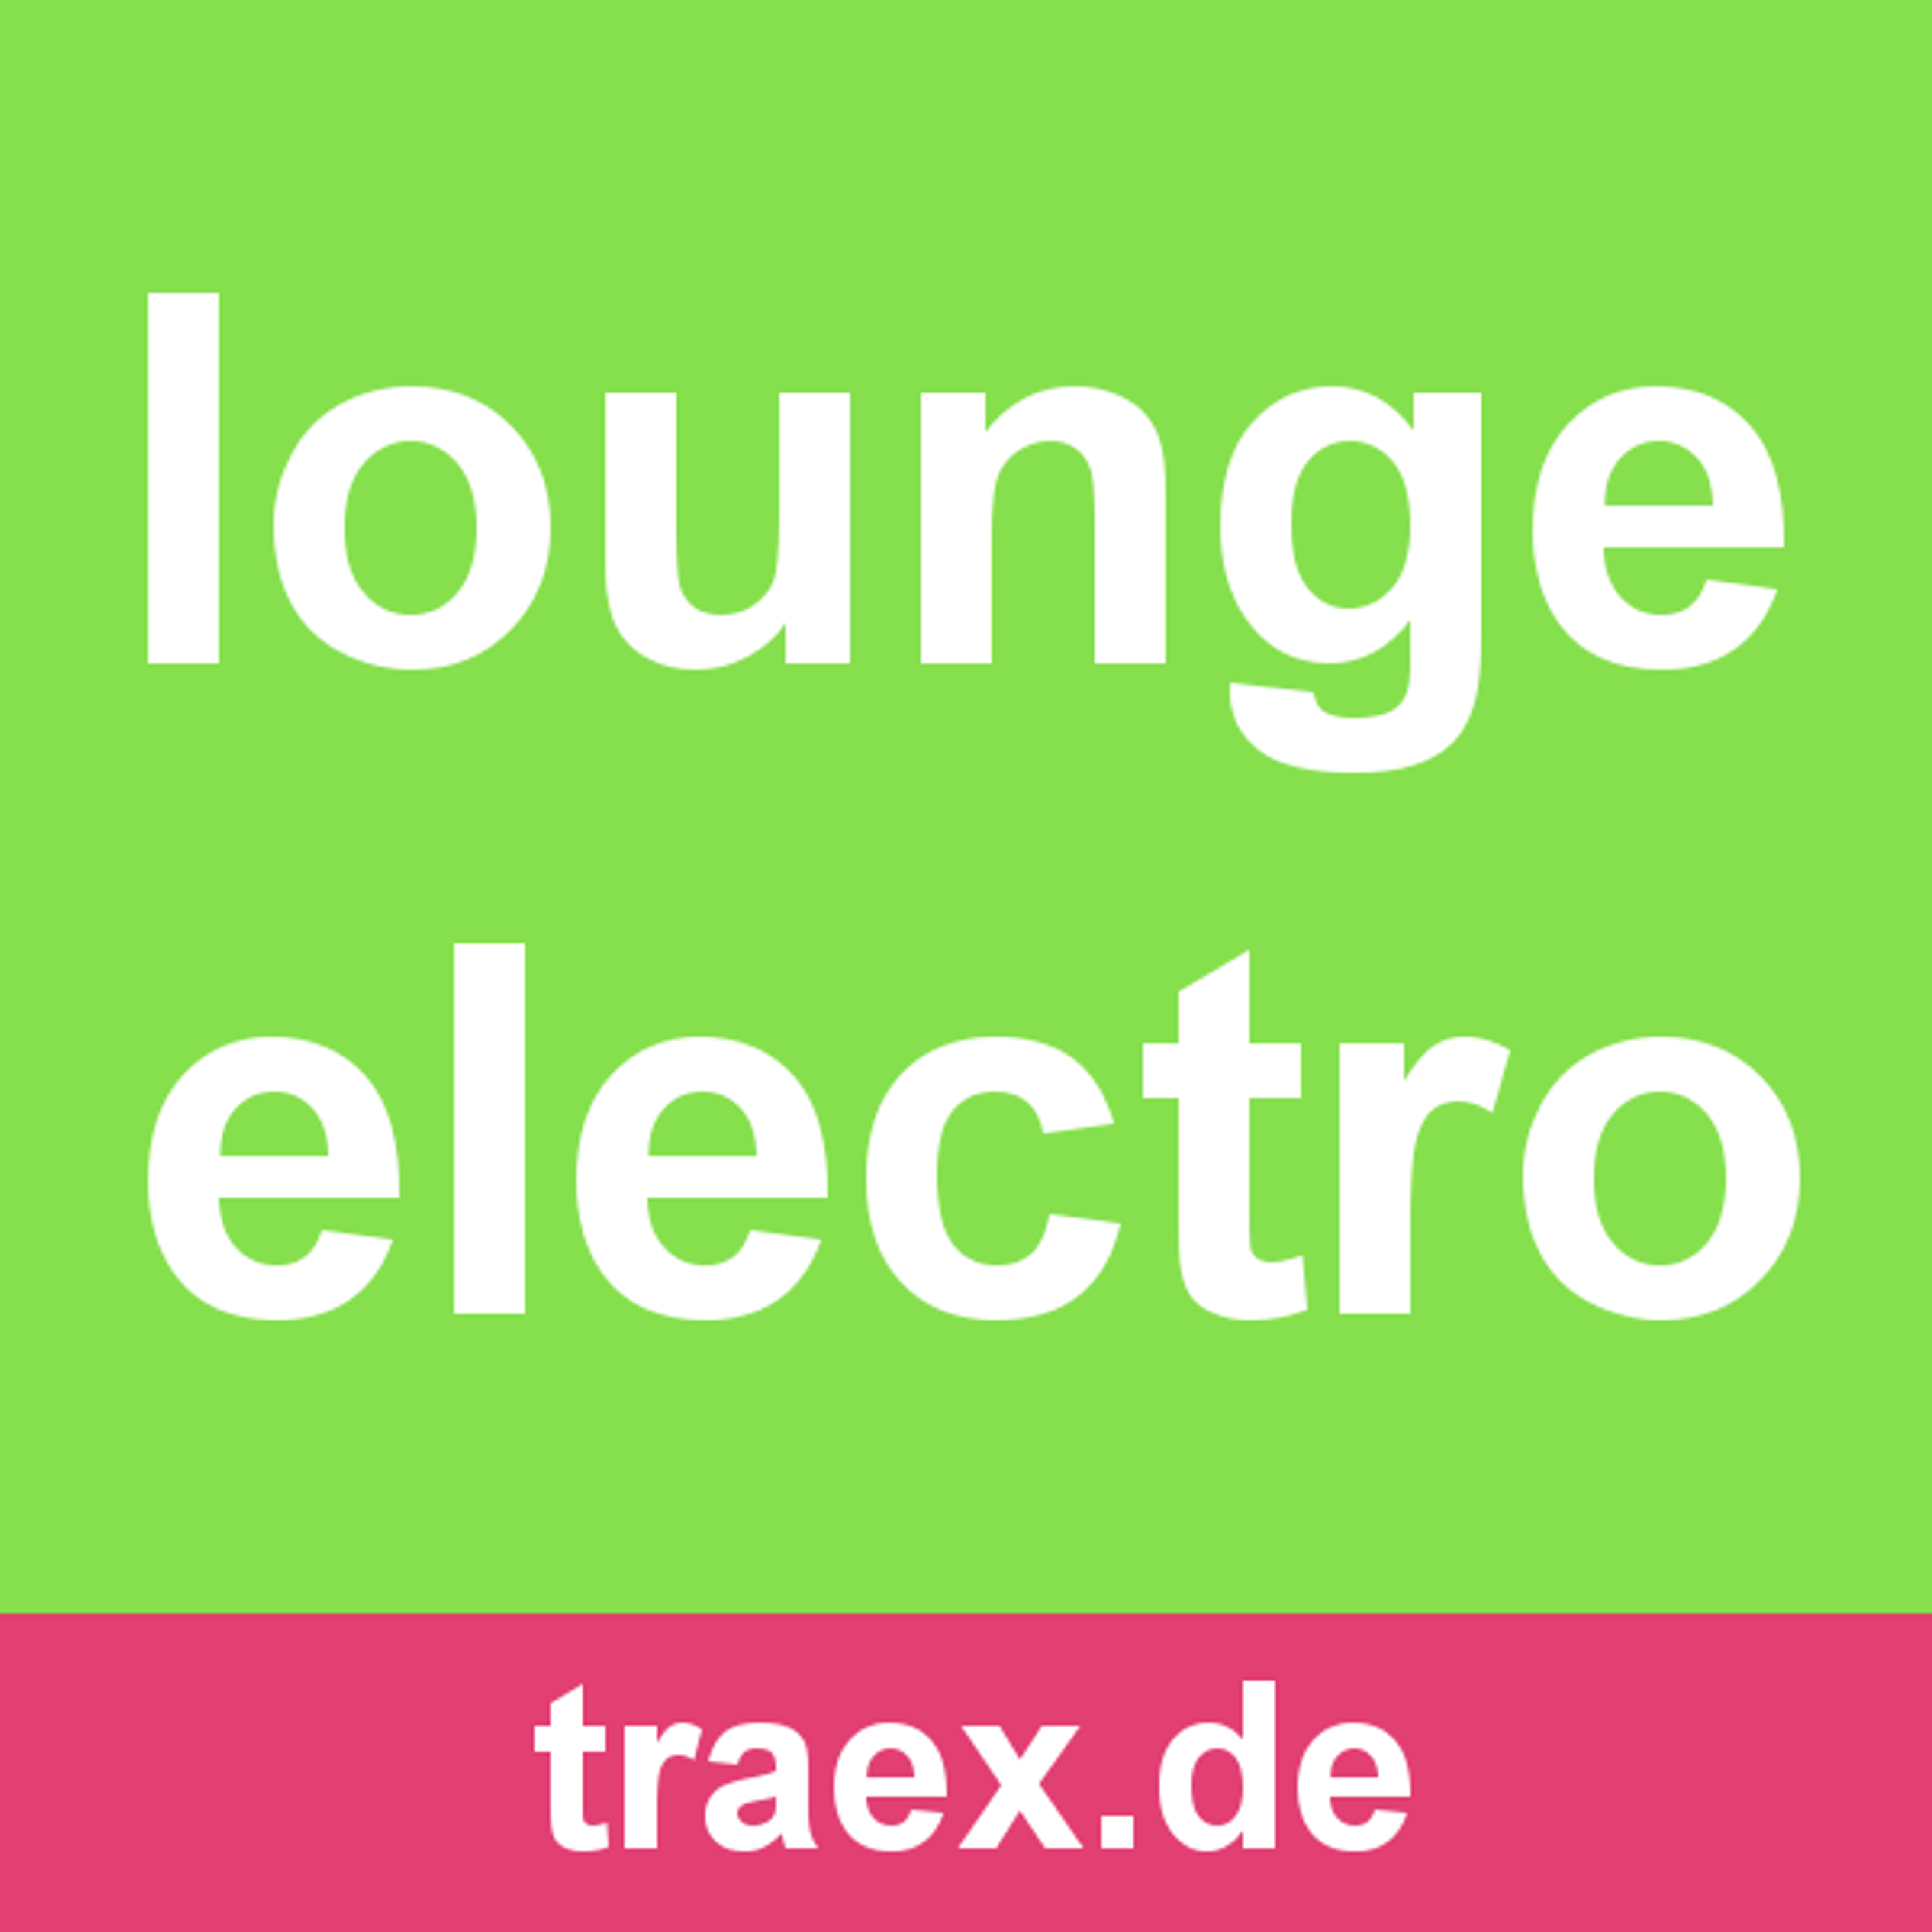 Traex Chill Electro Lounge Music Podcast